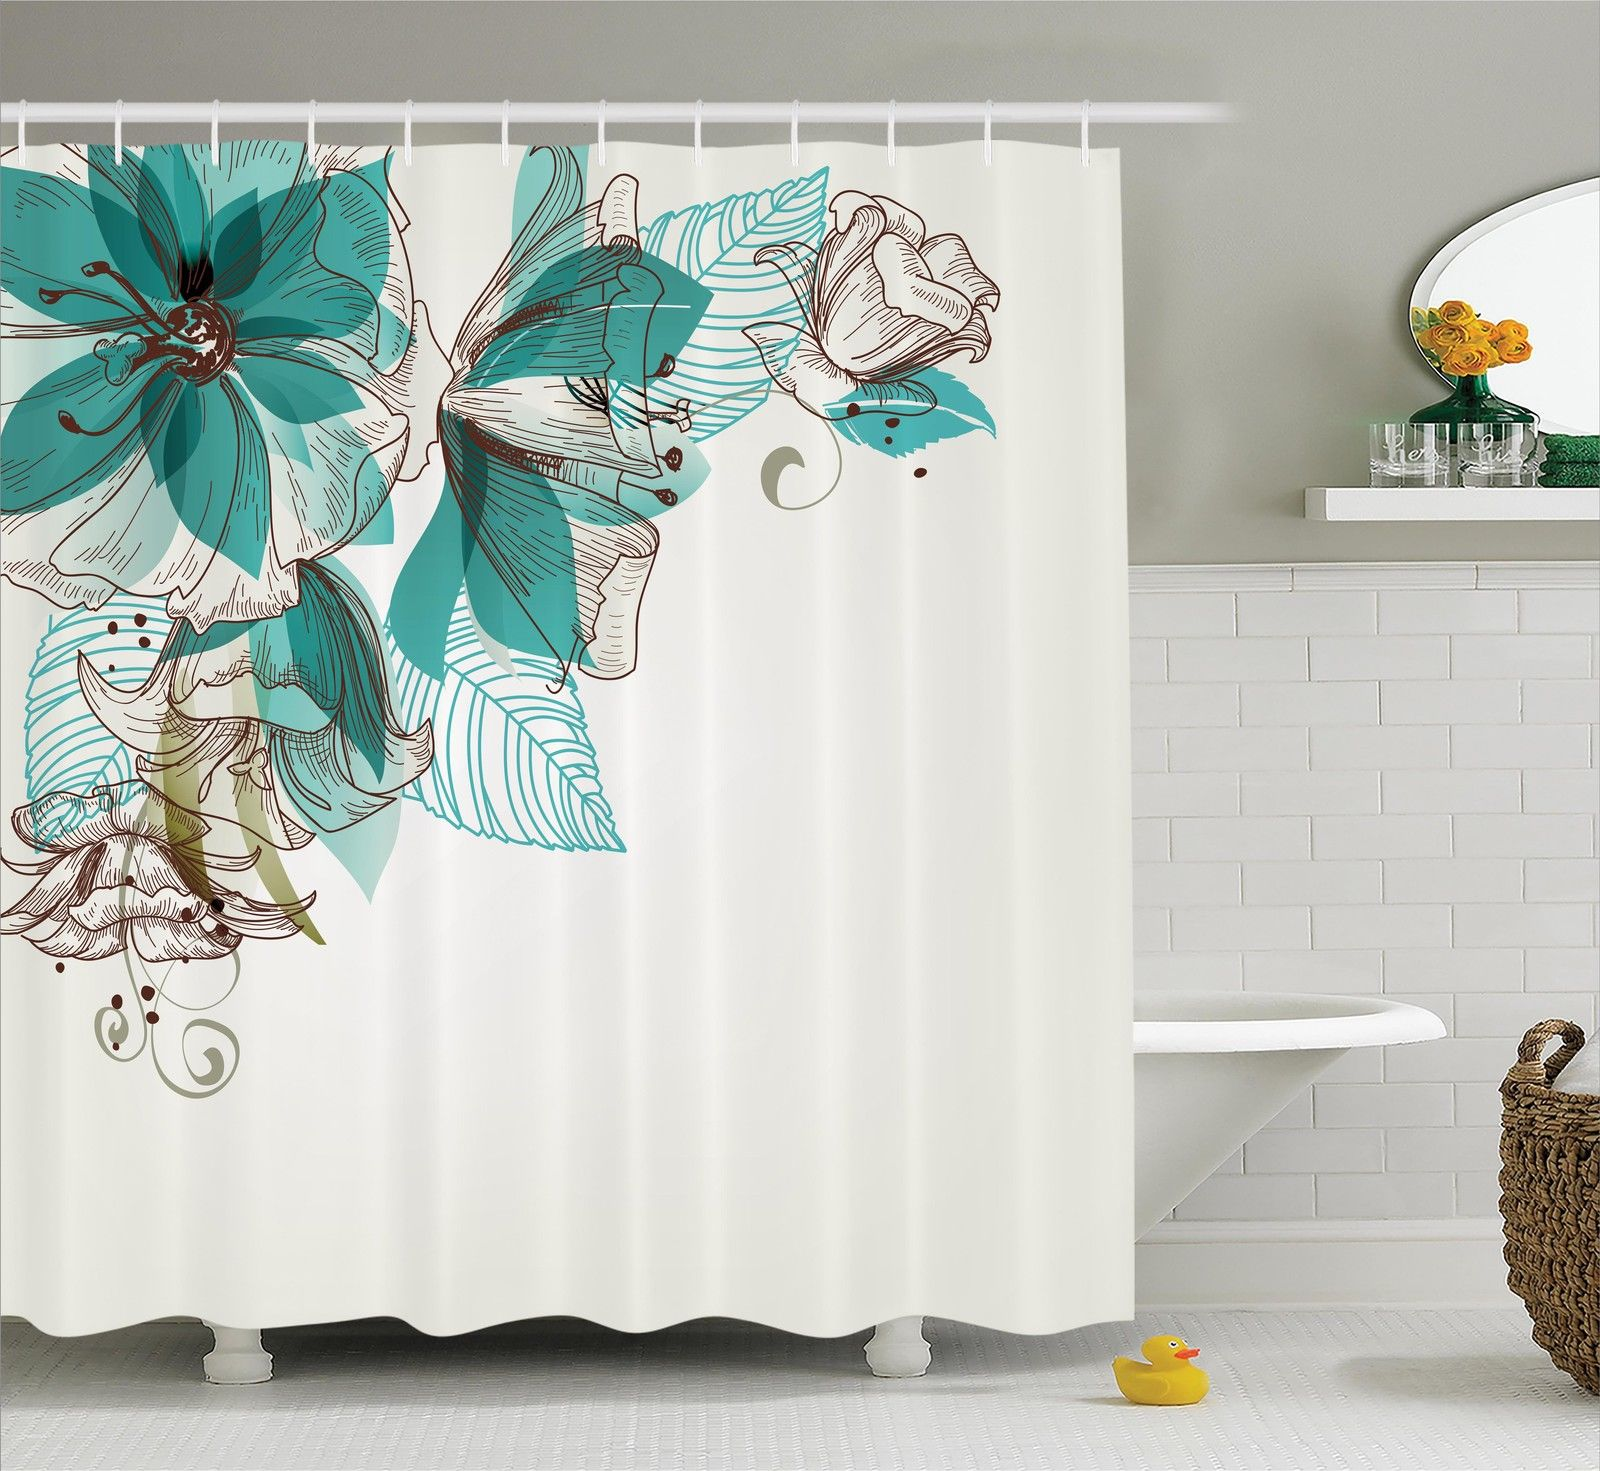 Turquoise Shower Curtain Flowers Buds Leaf At The Top Left Corner Festive Season Celebrating Theme Fabric Bathroom Set With Hooks Teal Pale Green